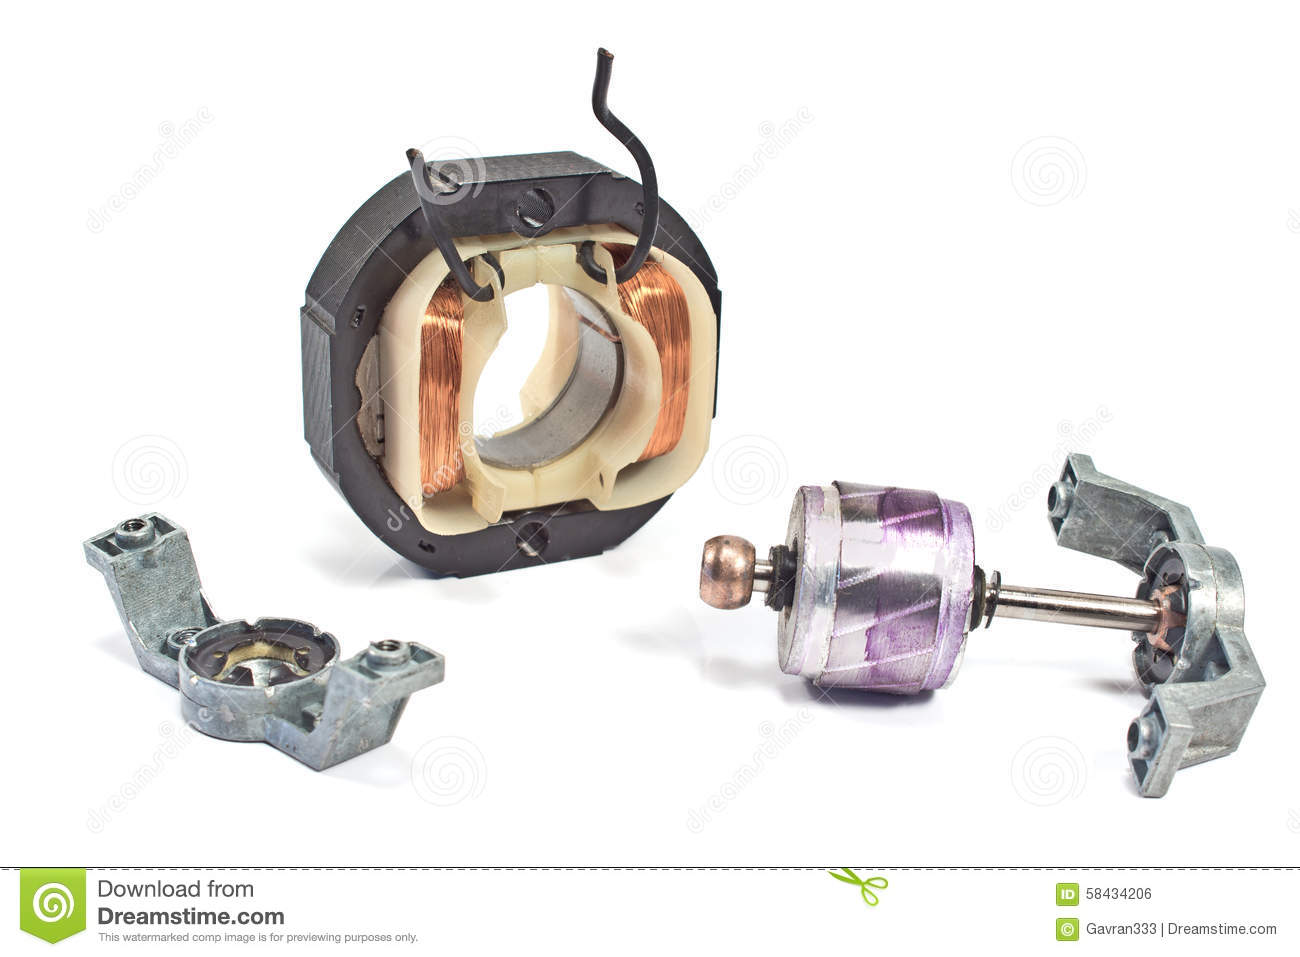 Electric copper coil motor